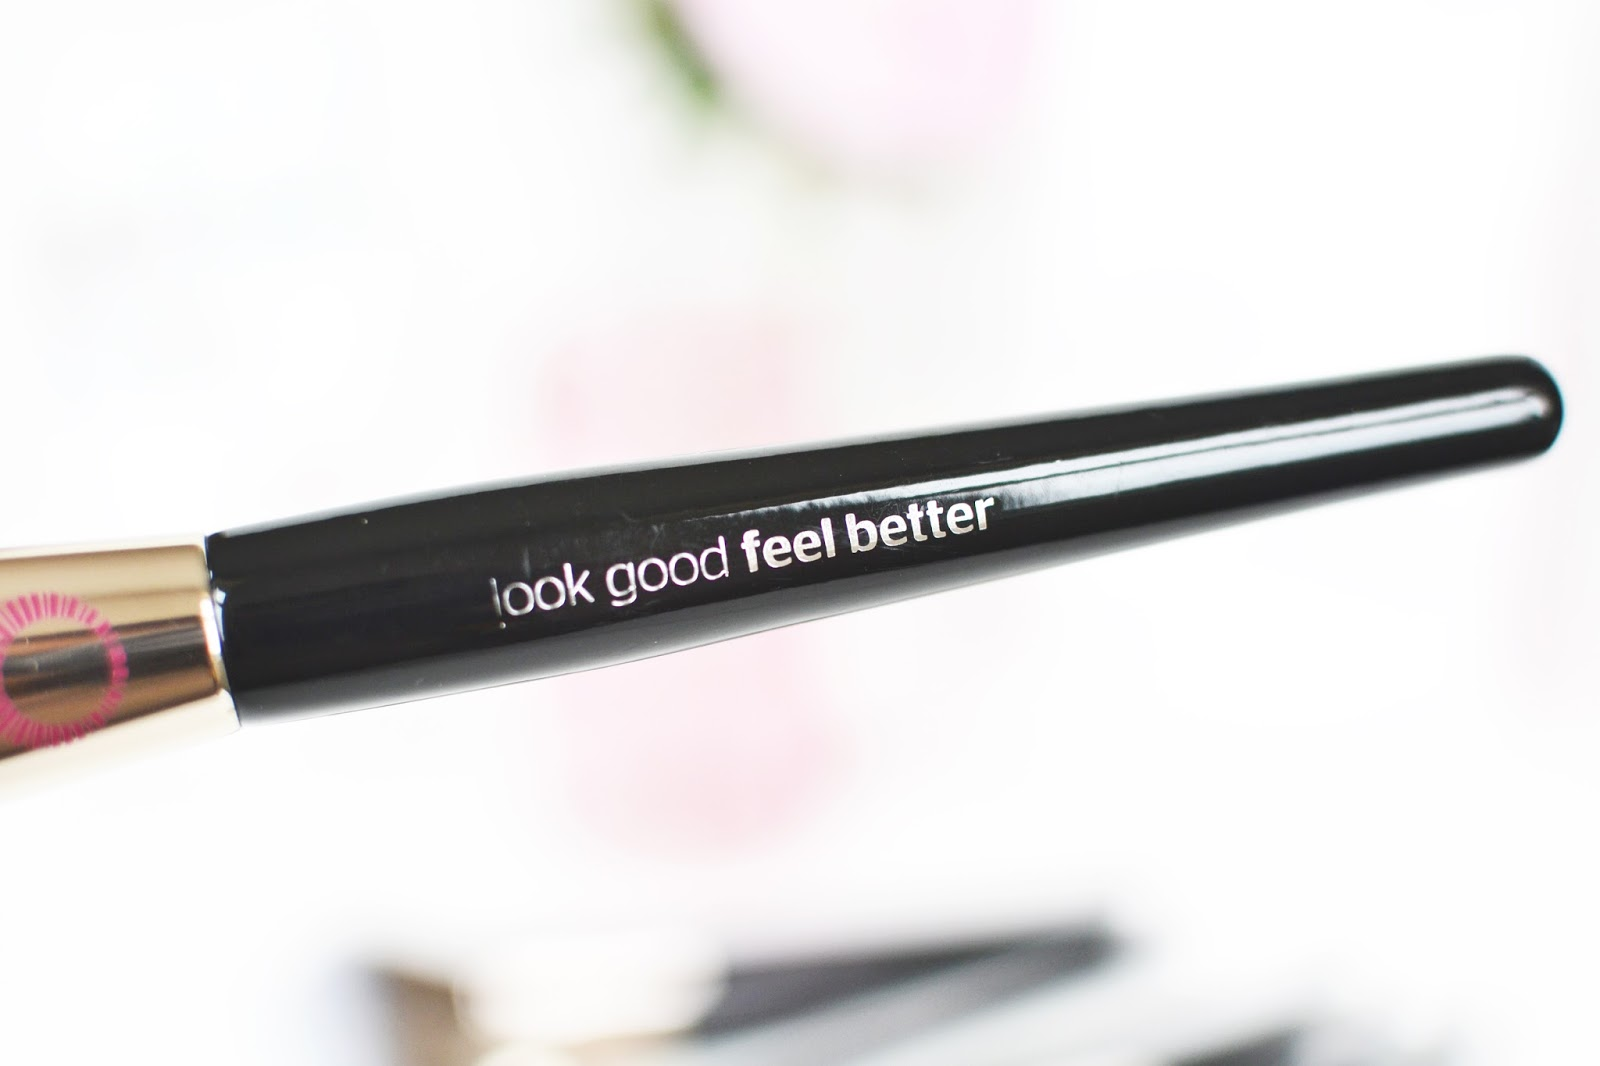 make up brushes from look good feel better